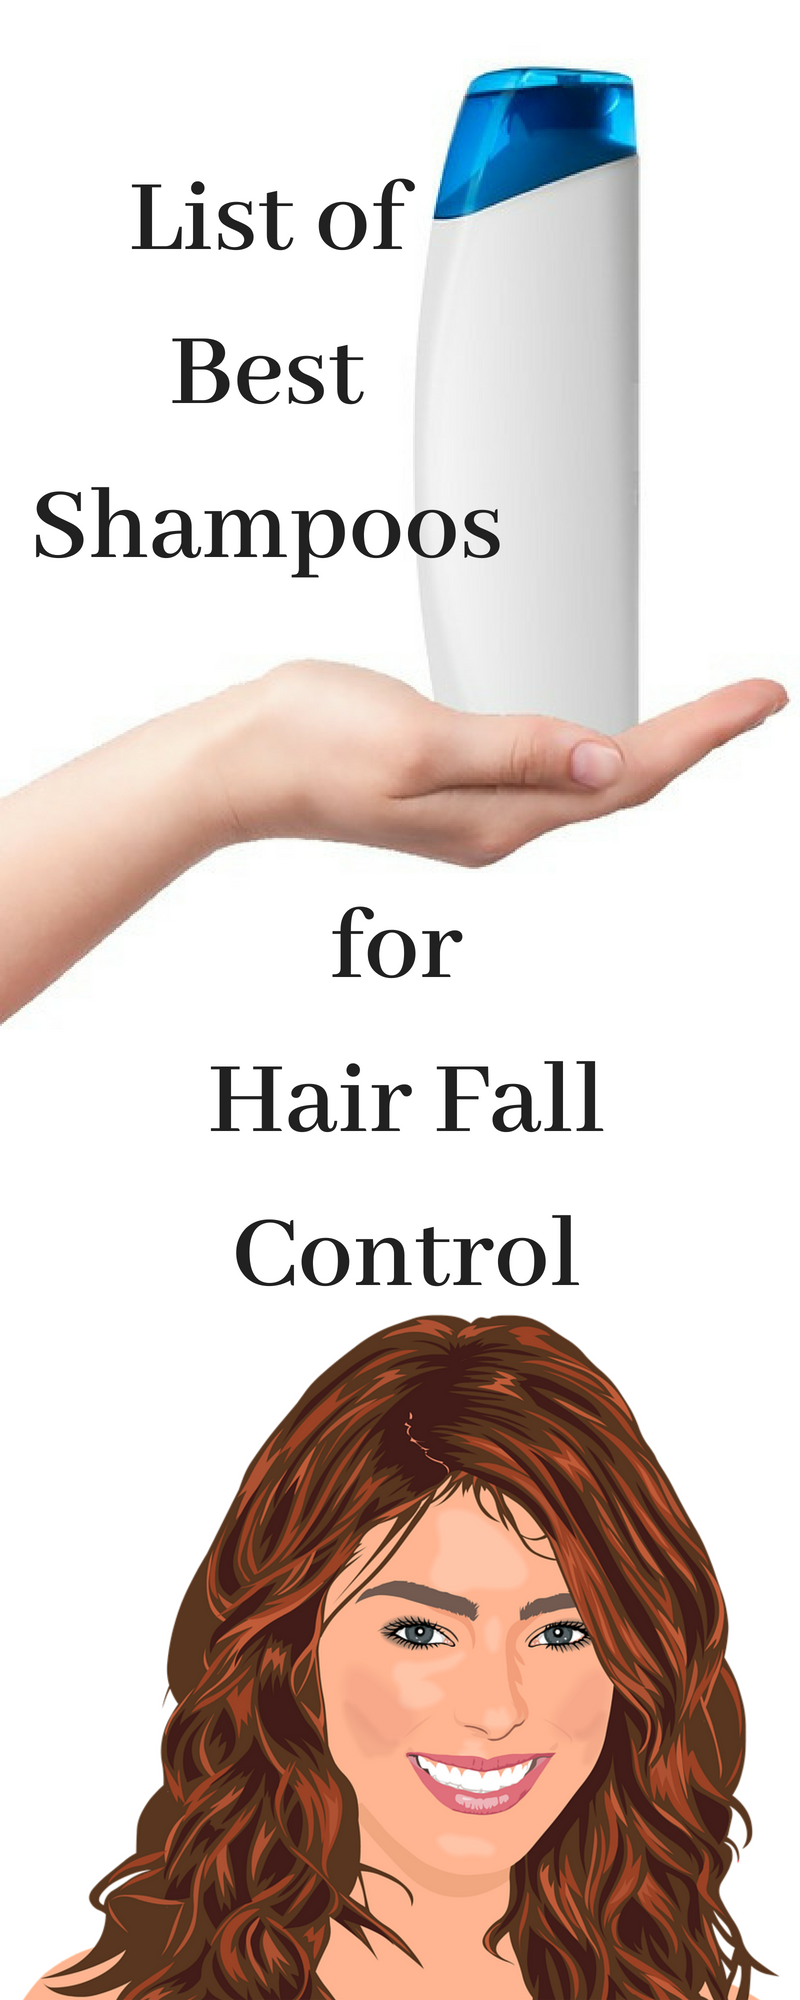 15 Trusted and Best Shampoos for Hair Fall Control in